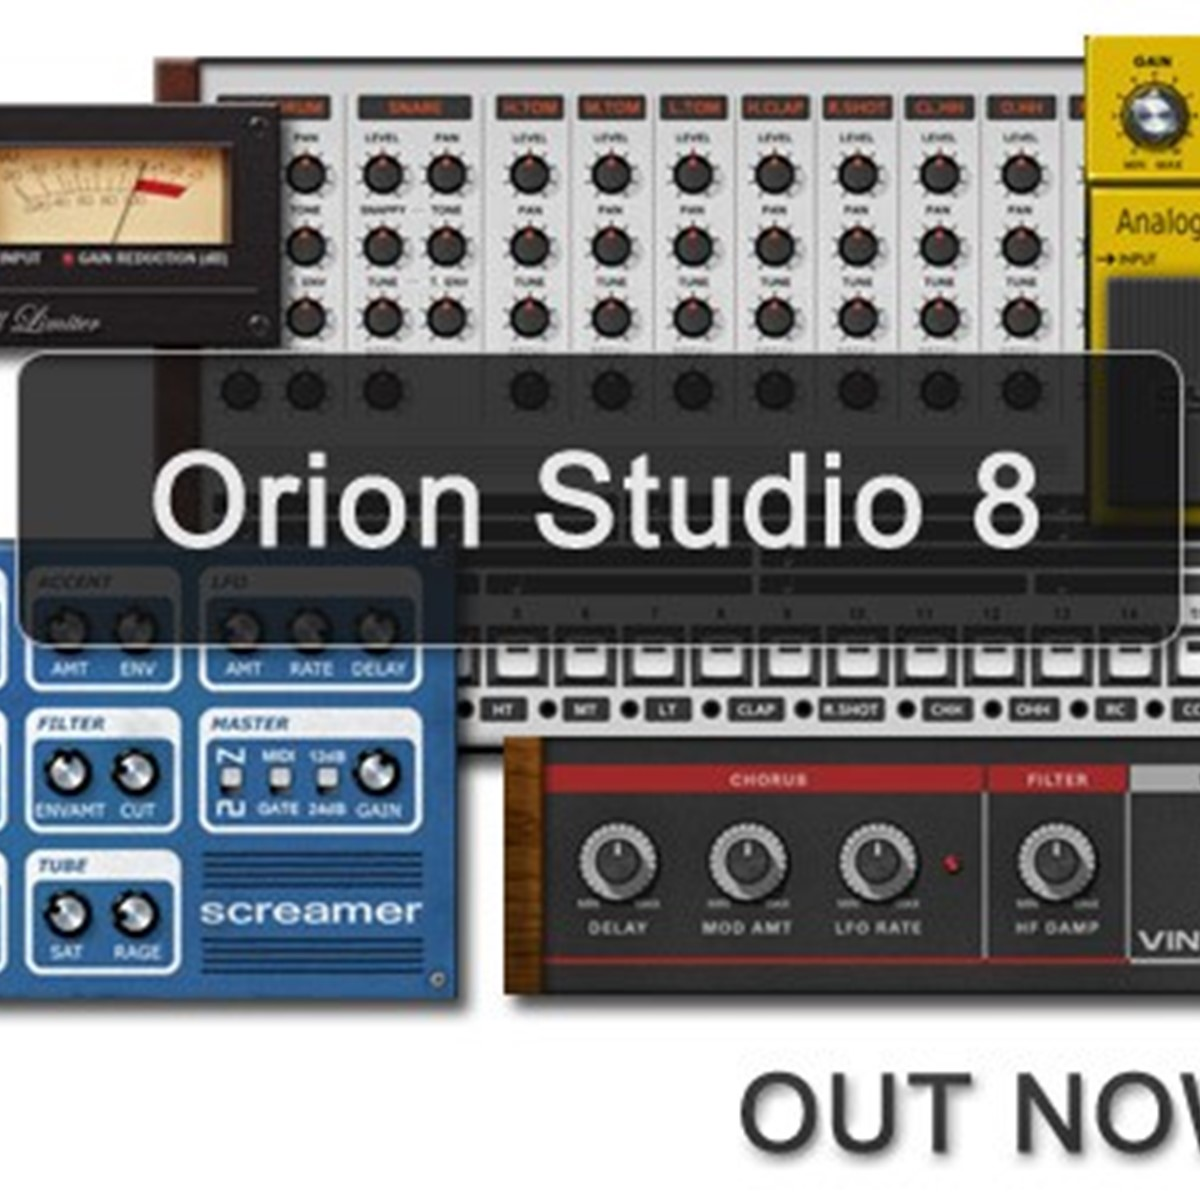 Orion Studio Alternatives And Similar Software